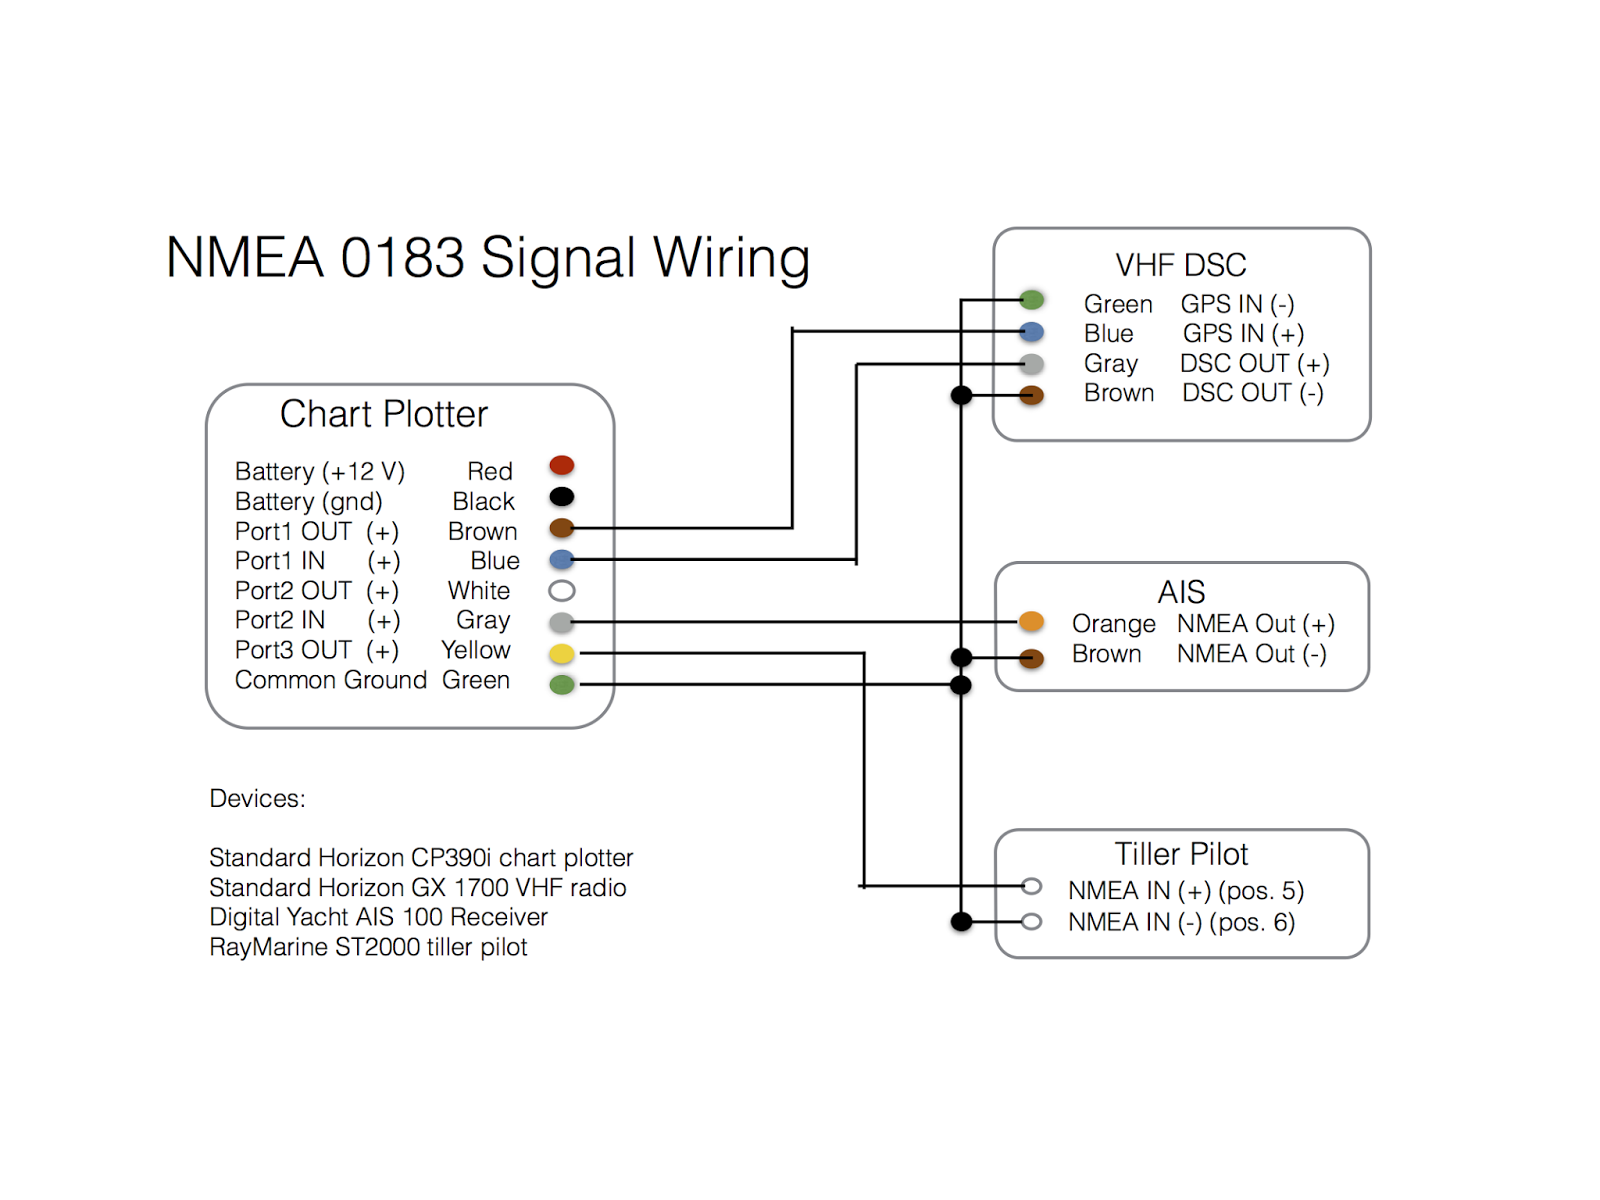 Connecting A Chart Plotter  Vhf  Ais Receiver And Tiller Pilot Using The Nmea 0183 Protocol